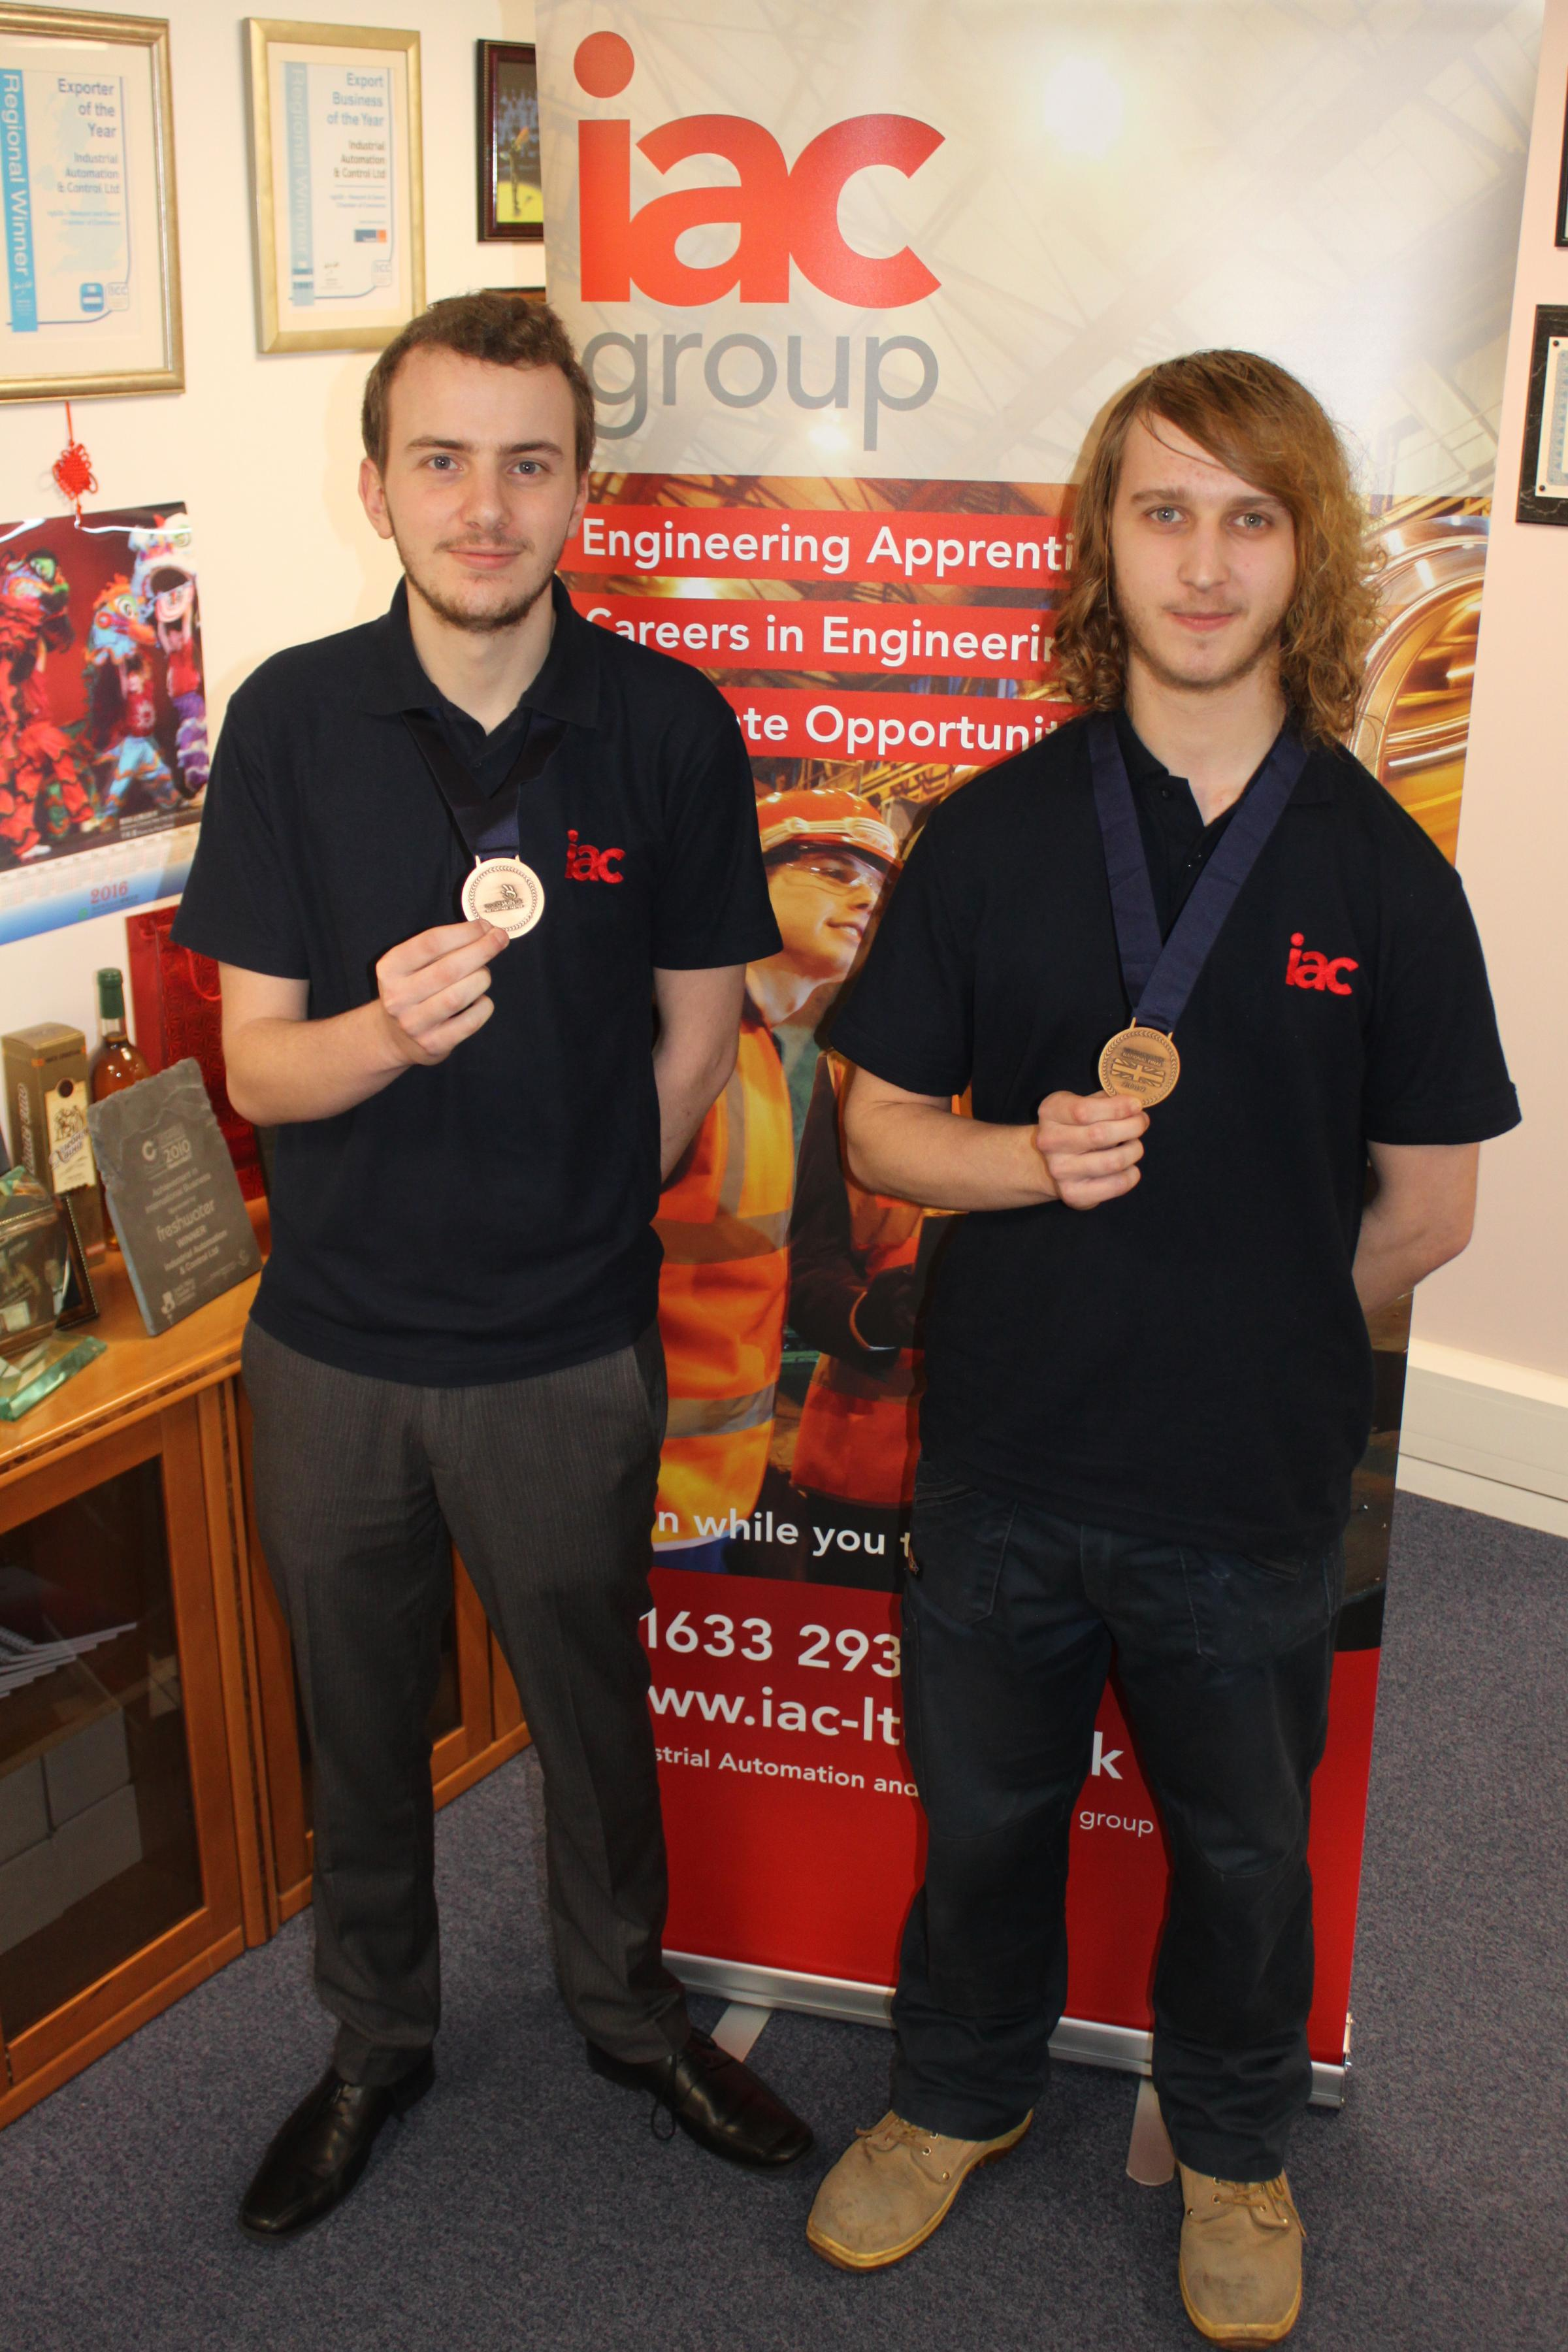 Switched on: Electrical engineering apprentices Alex Smart (left) and Callum Hughes represented Gwent systems control firm IAC at Worldskills UK where they won bronze